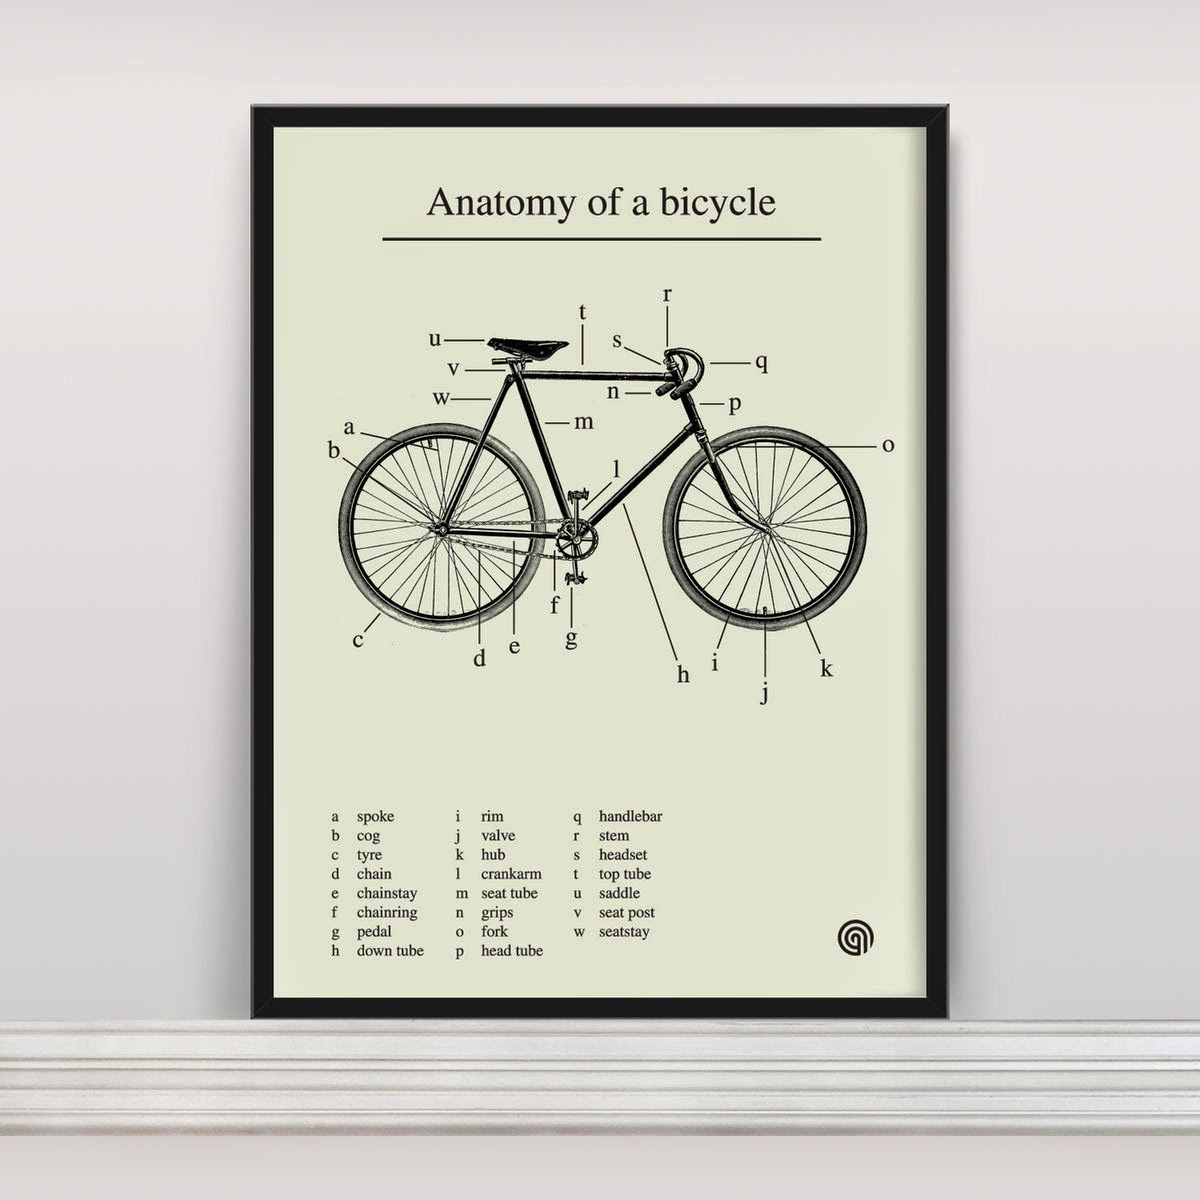 2014 07 04+Bicycle+Friends+Bicycle+Diagram bicyclefriends com anatomy of a bicycle